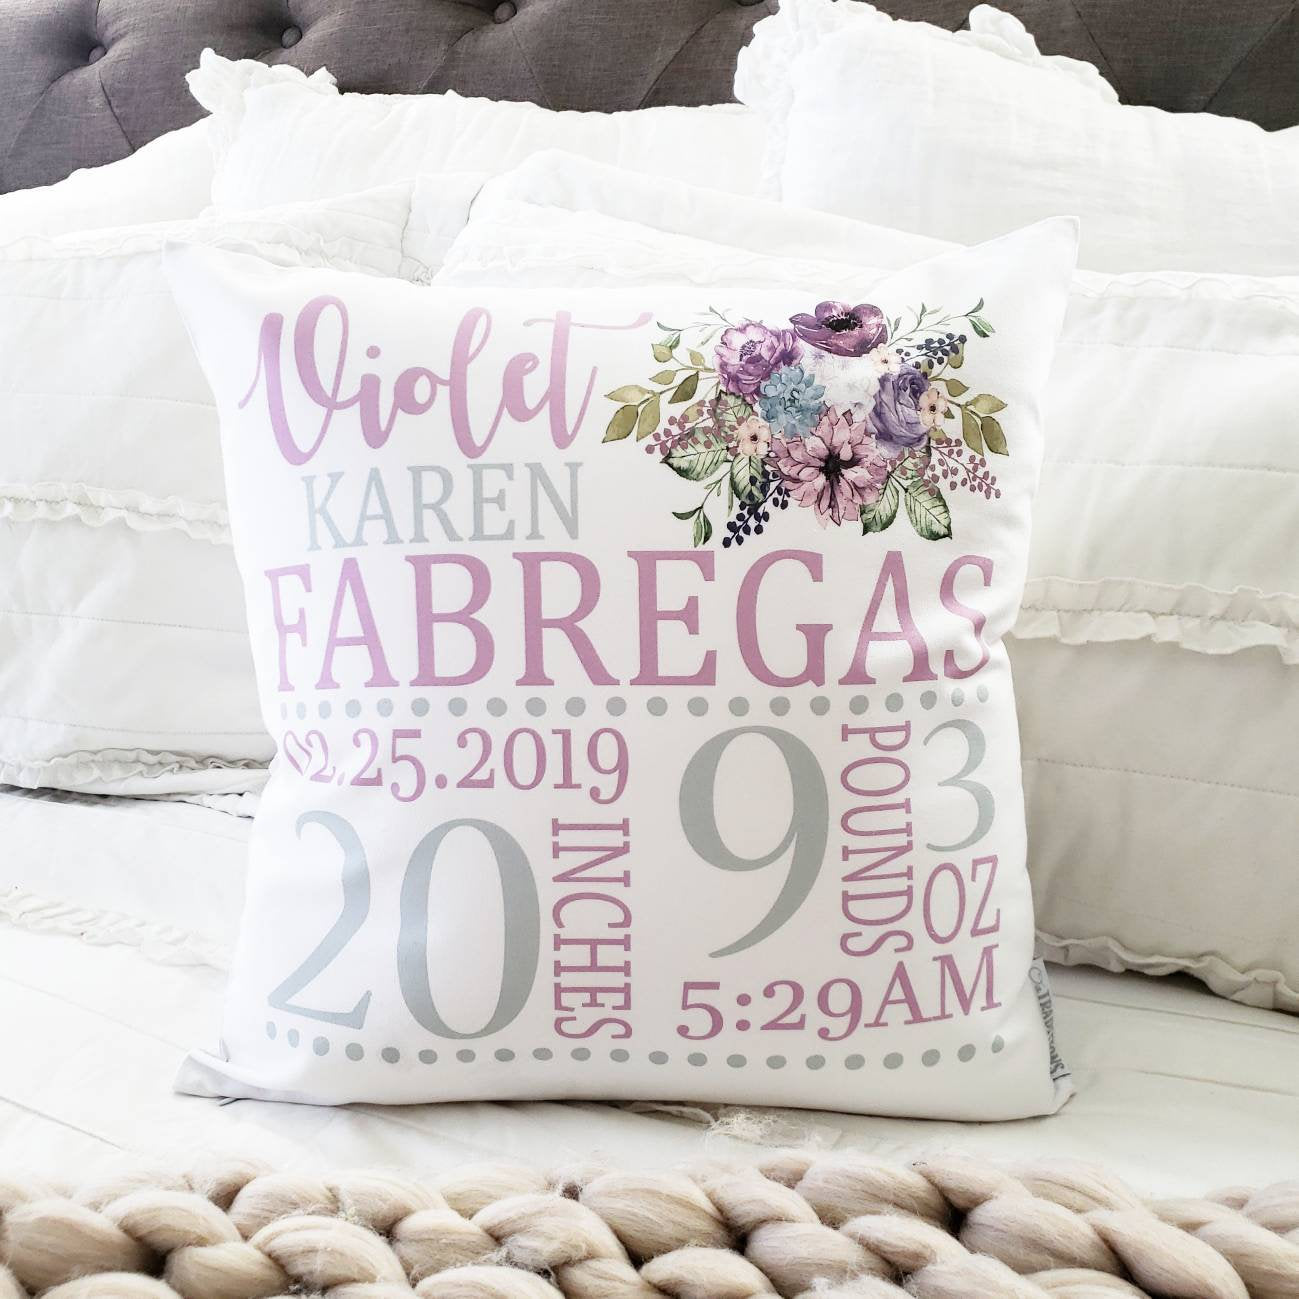 Personalized birth pillow cover, birth Announcement pillow cover, birth pillow cover, baby girl birth pillow, lavender and gray